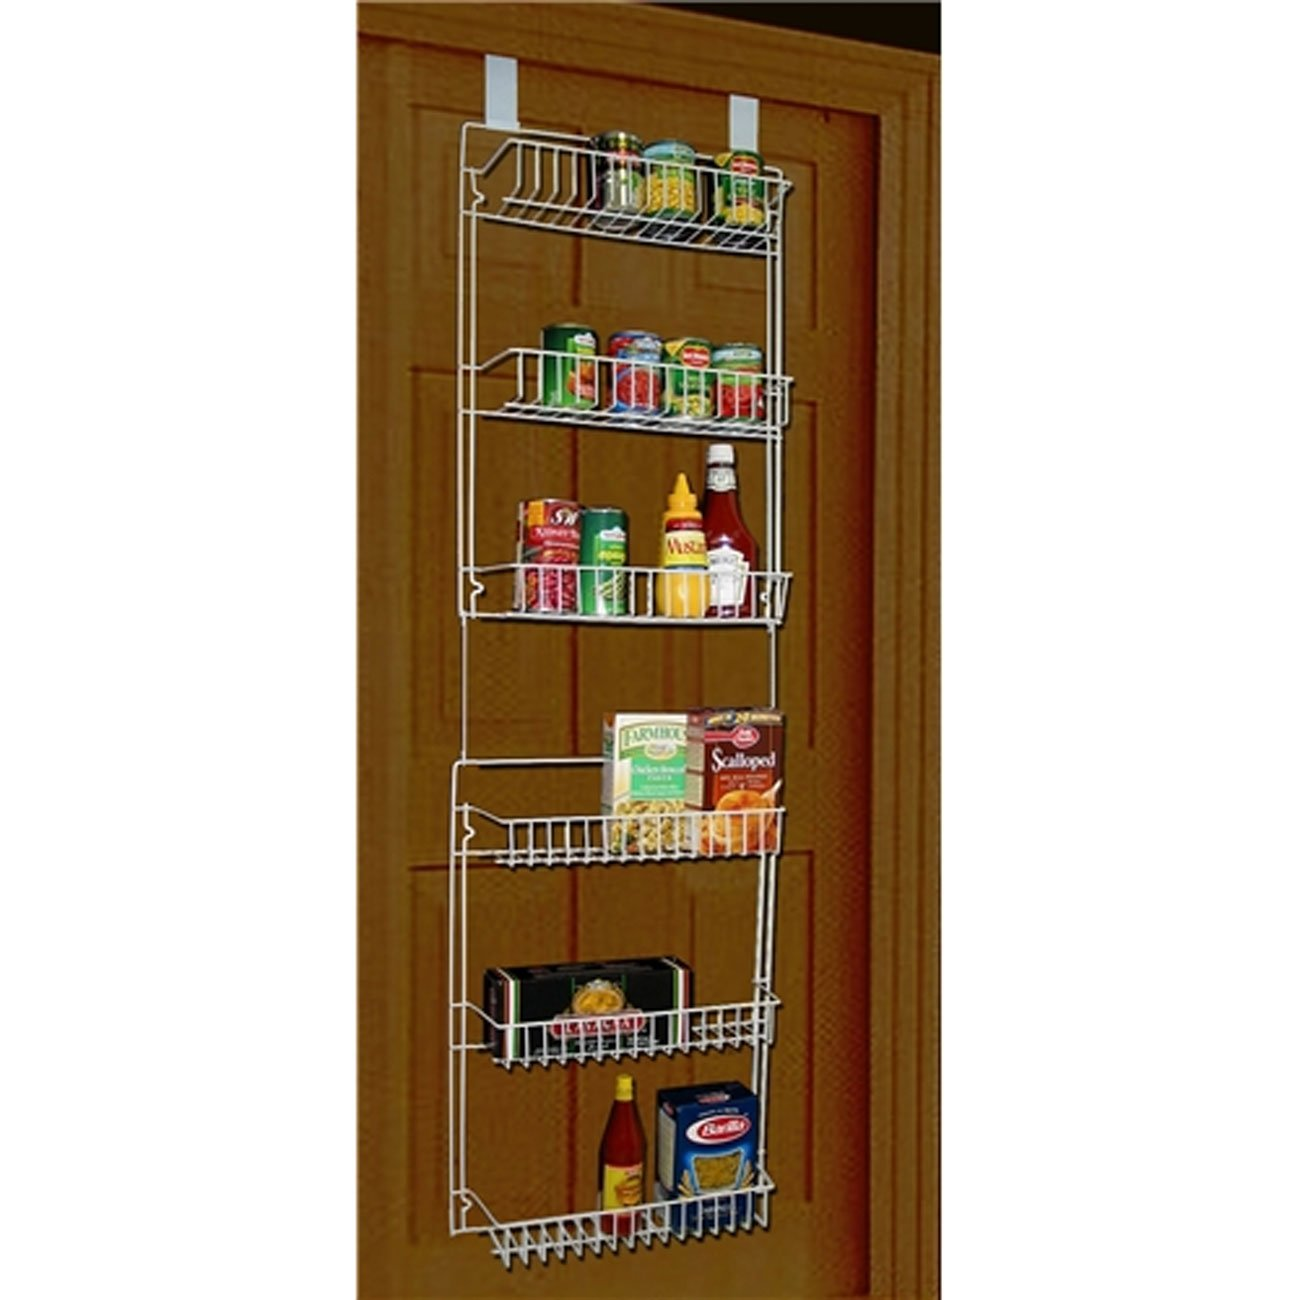 Charming Amazon.com: Storage Dynamics 5 Foot Vinyl Covered Steel Over Door Storage  Basket Rack: Home U0026 Kitchen